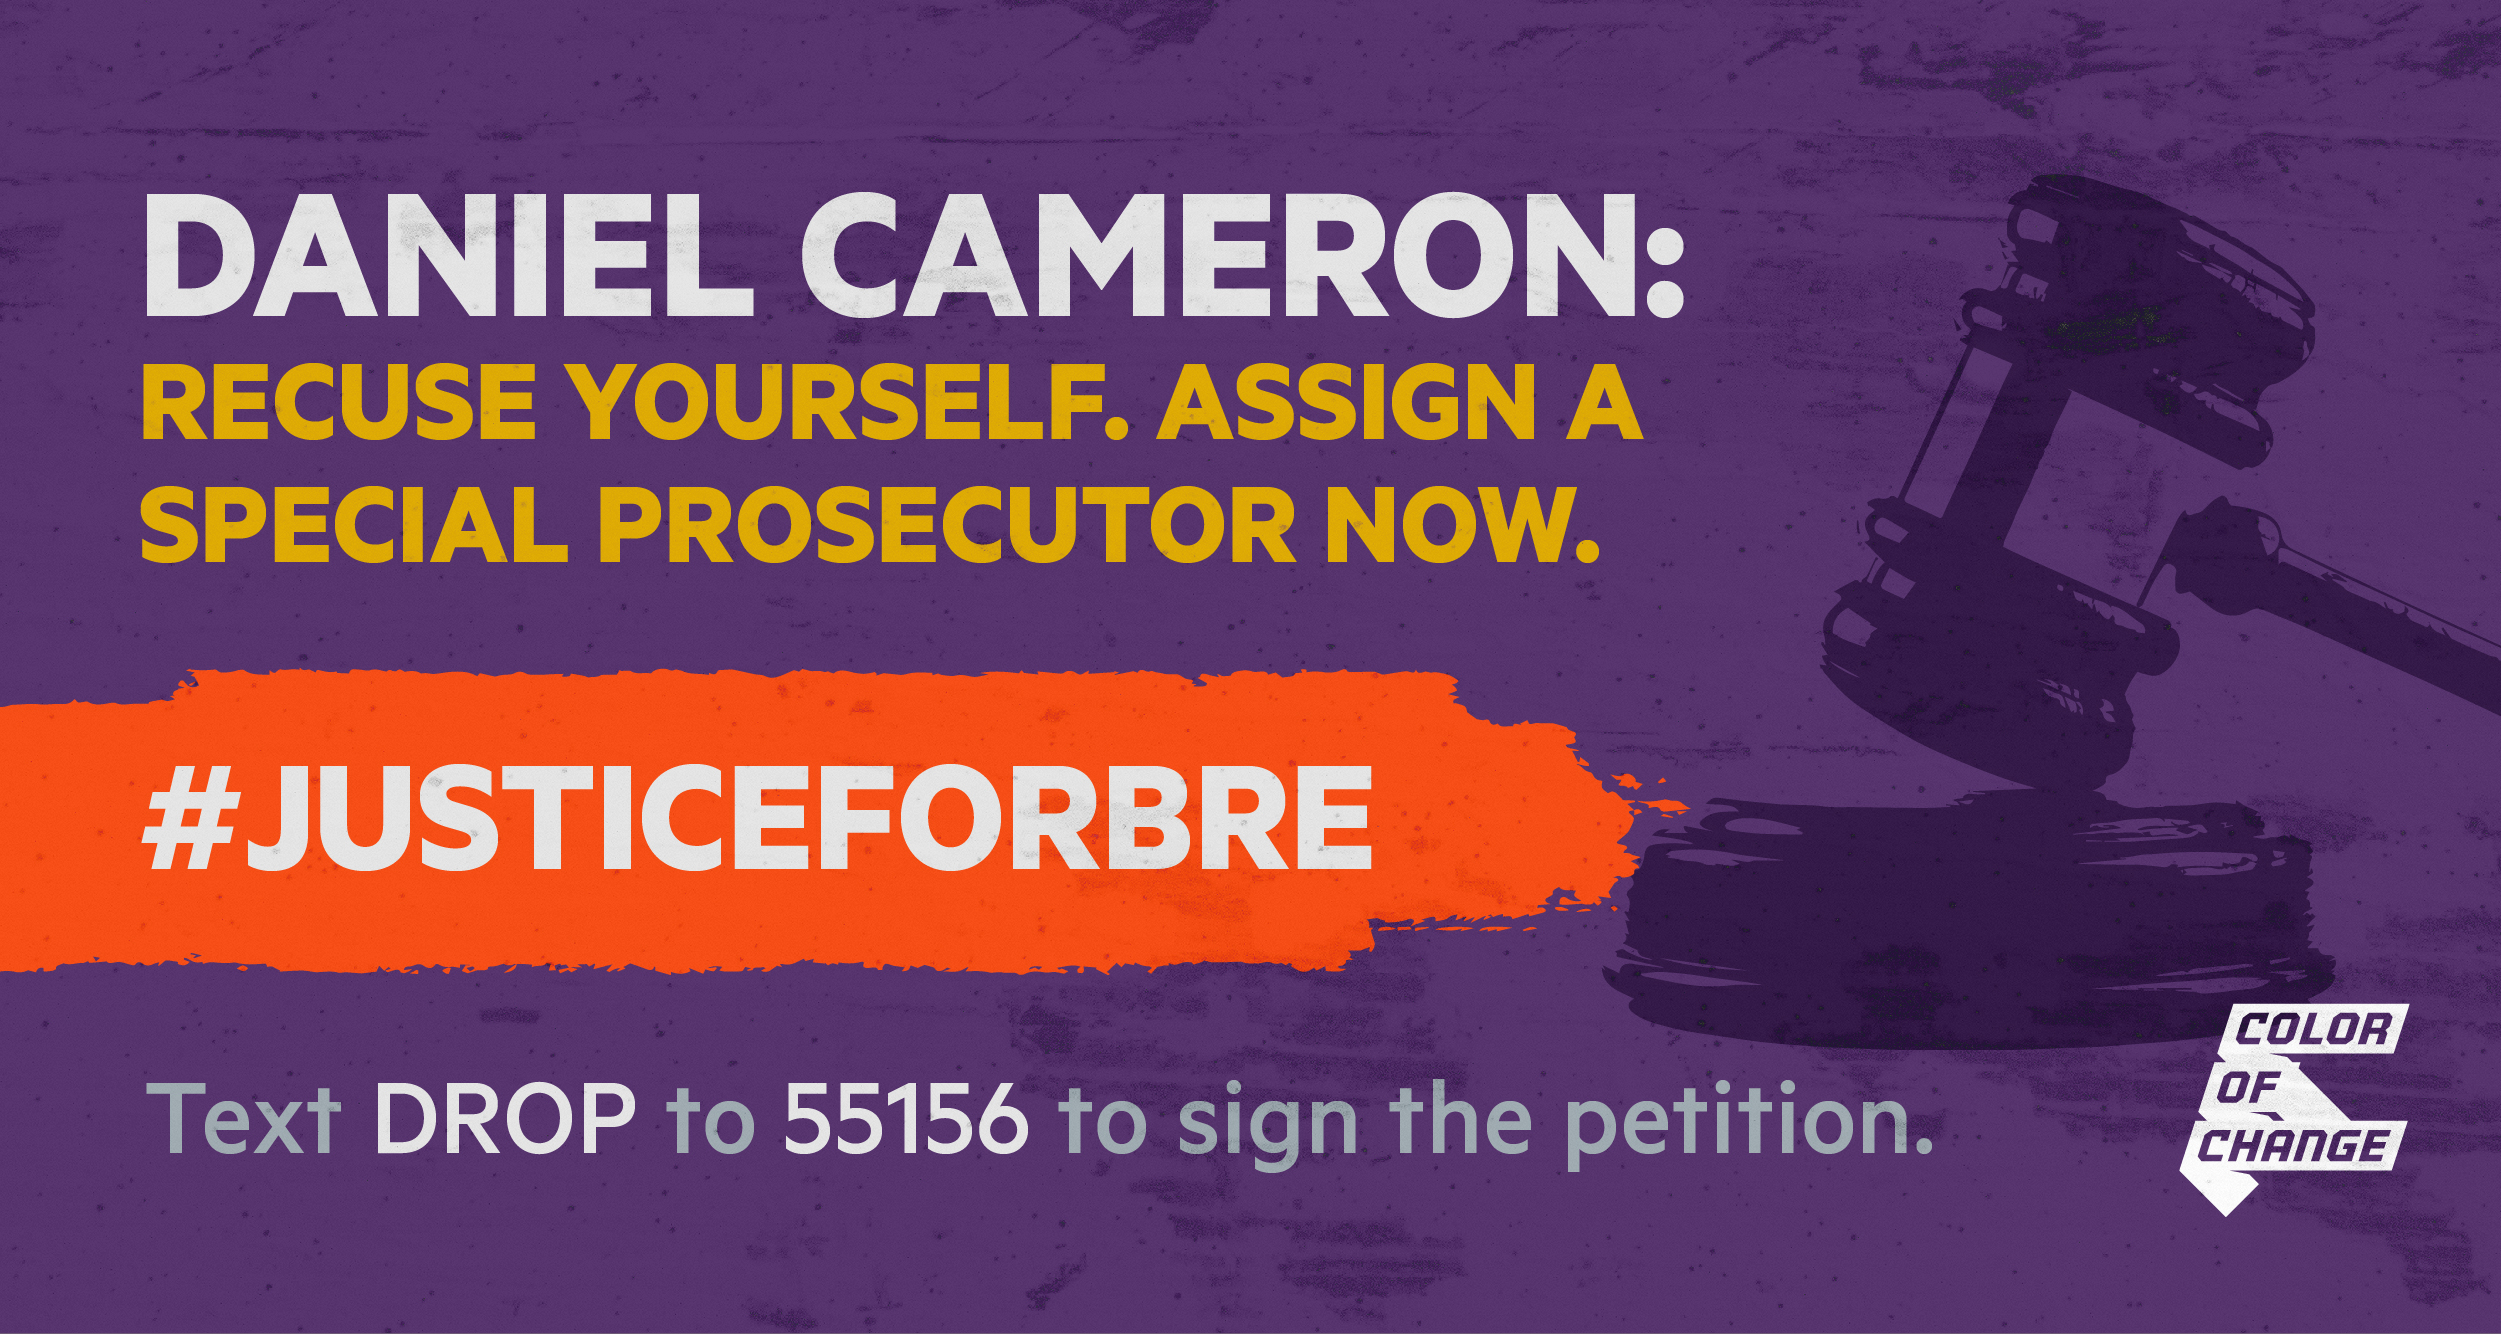 Tell Daniel Cameron to recuse himself and assign a special prosecutor.